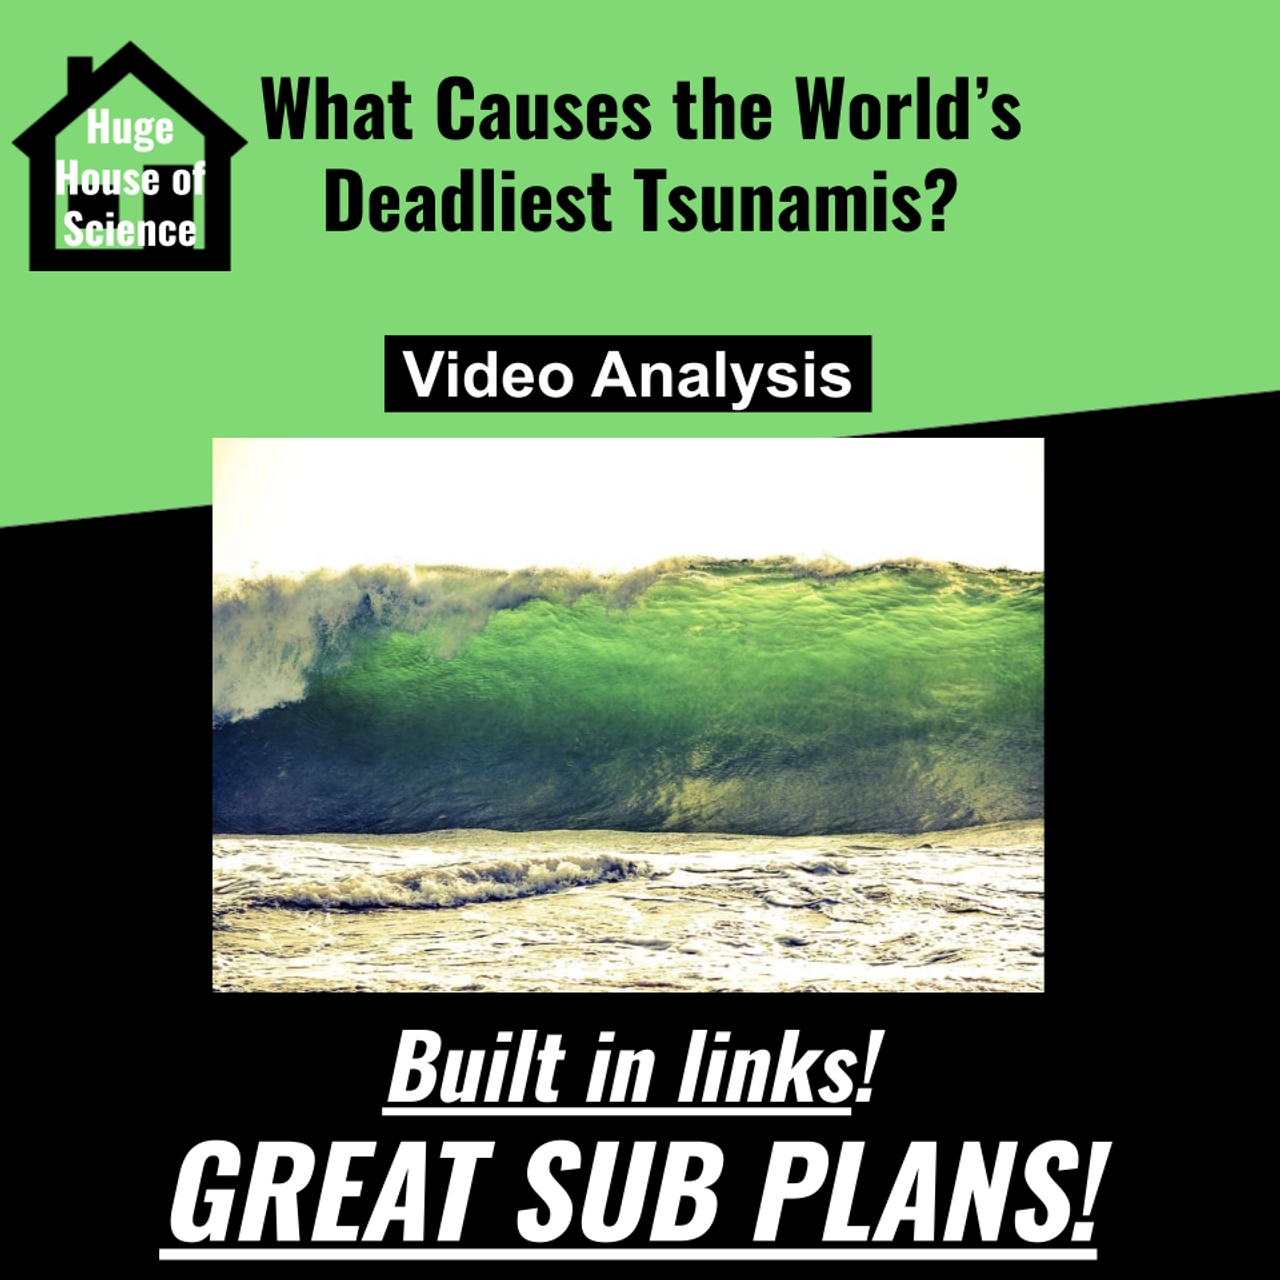 What Causes the Worlds Deadliest Tsunamis Video Analysis (Great sub plans!)